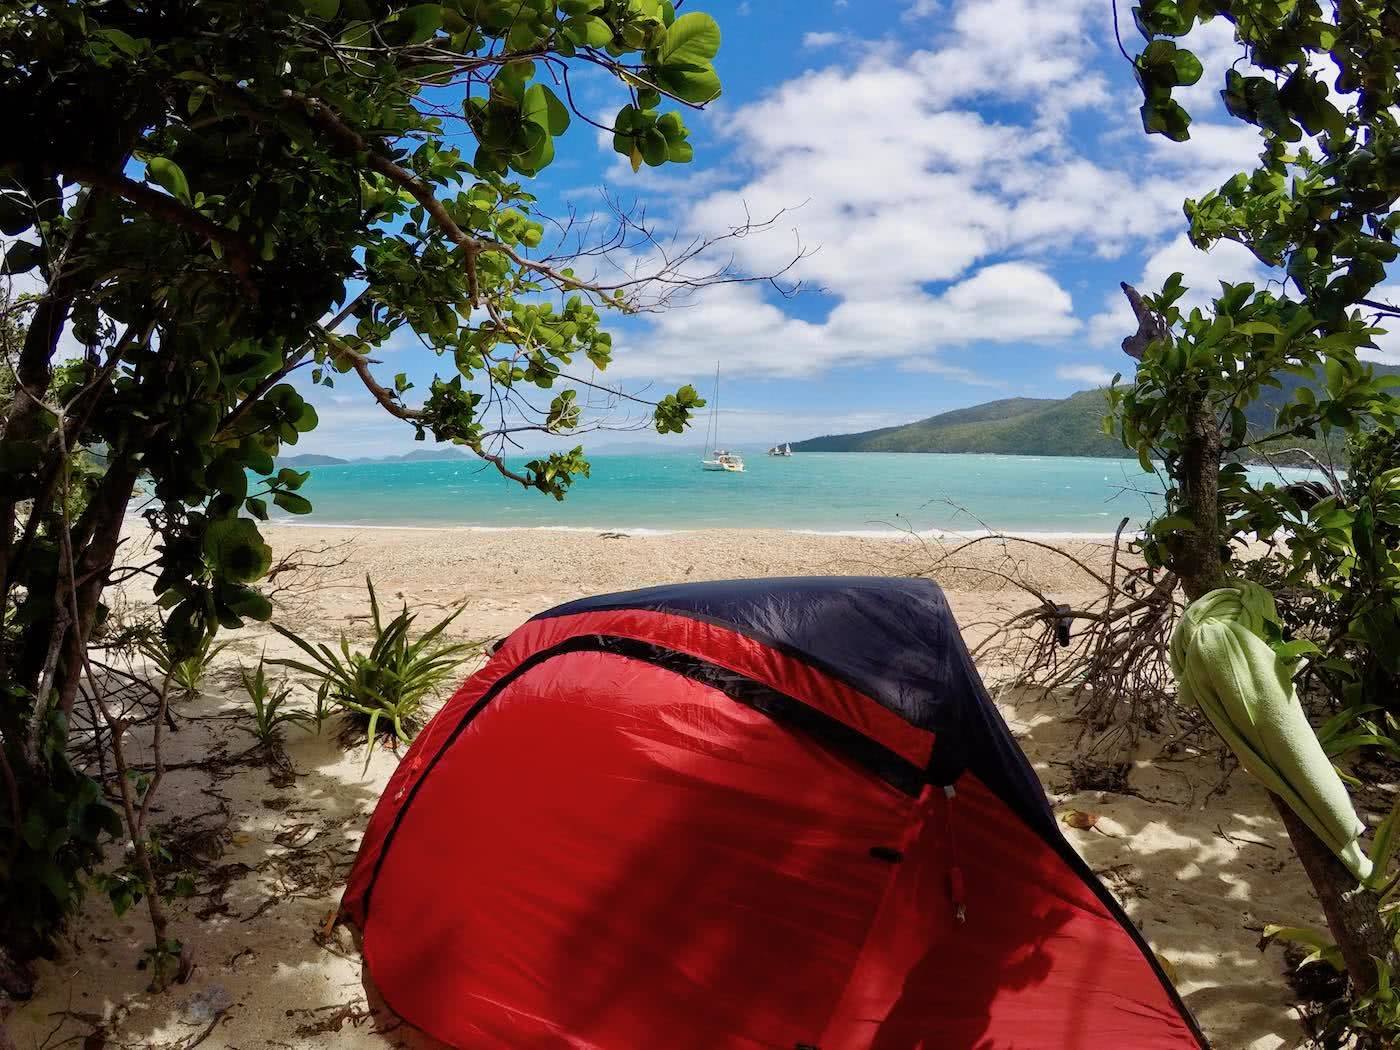 Camping The Whitsundays // Cairn Beach Campground (QLD), Solaye Snider, tent, trees, beach, ocean